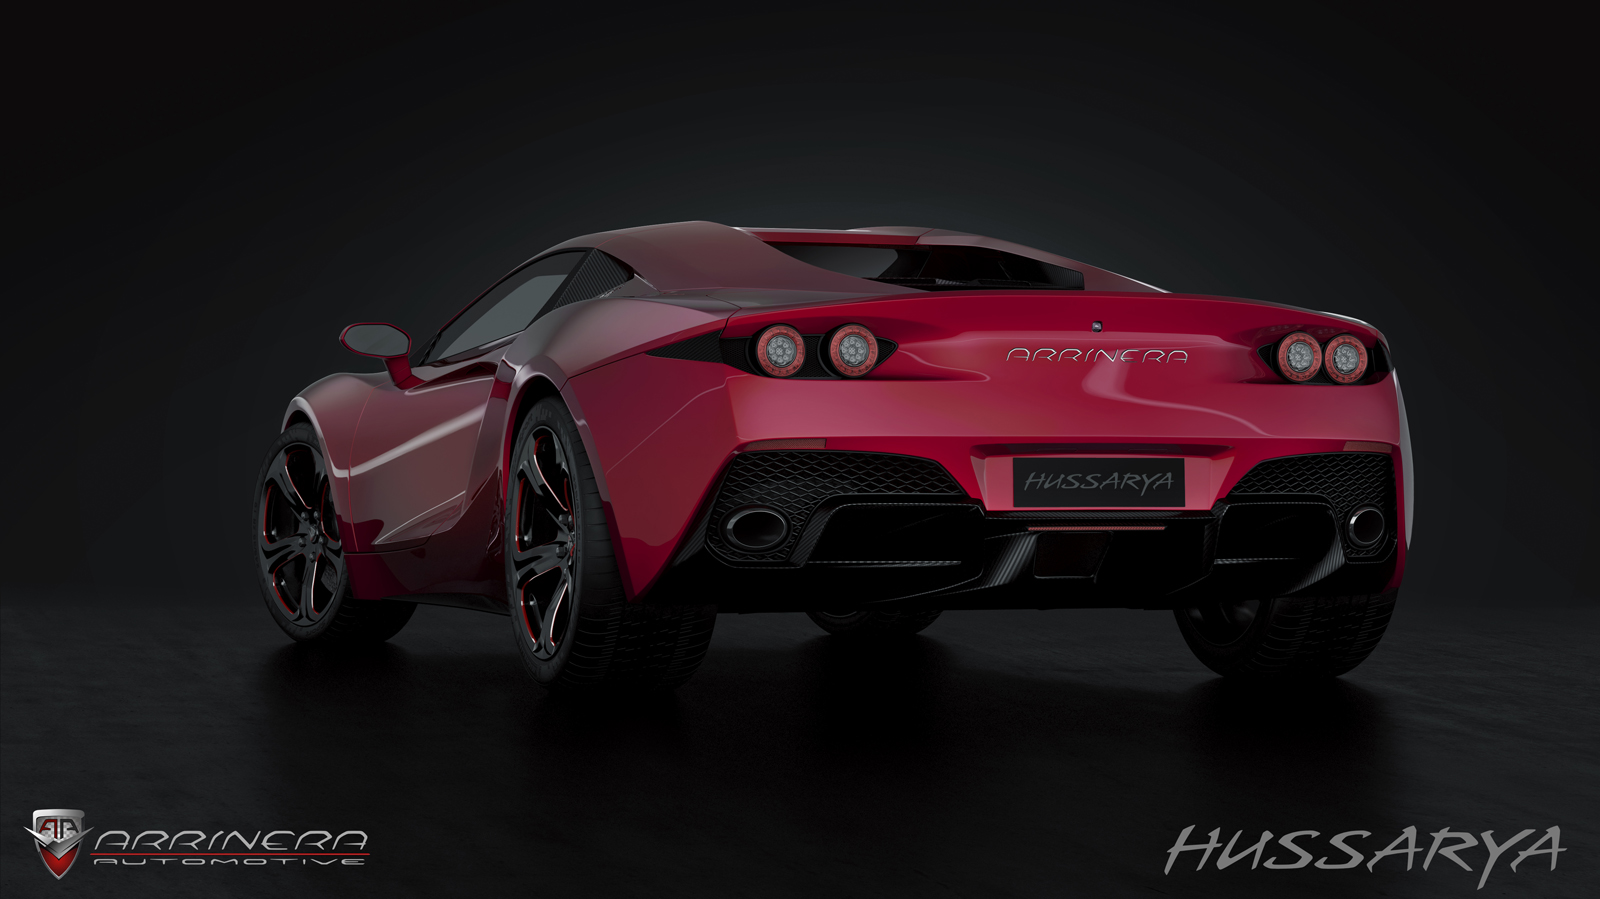 arrinera hussarya the ultimate polish supercar muscle cars zone. Black Bedroom Furniture Sets. Home Design Ideas